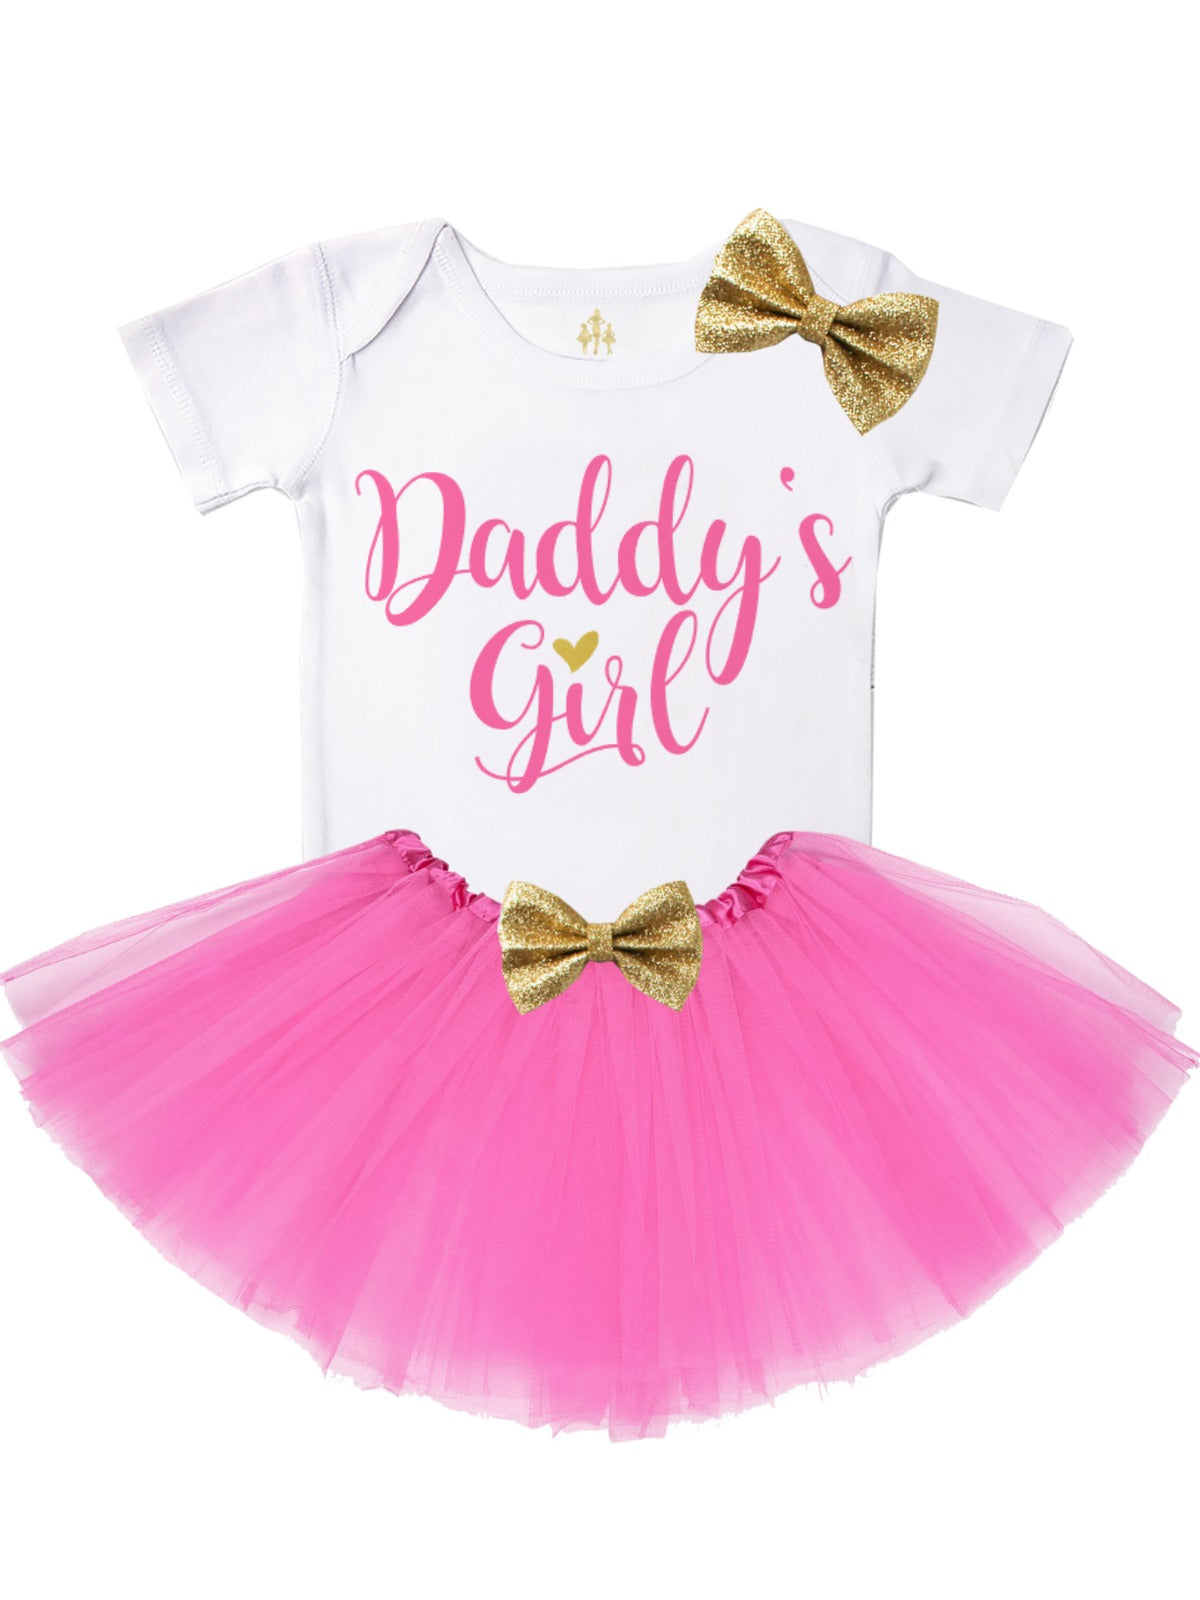 1a926478023a Daddy s Girl Tutu Outfit - Pink   Gold - MMofPhilly